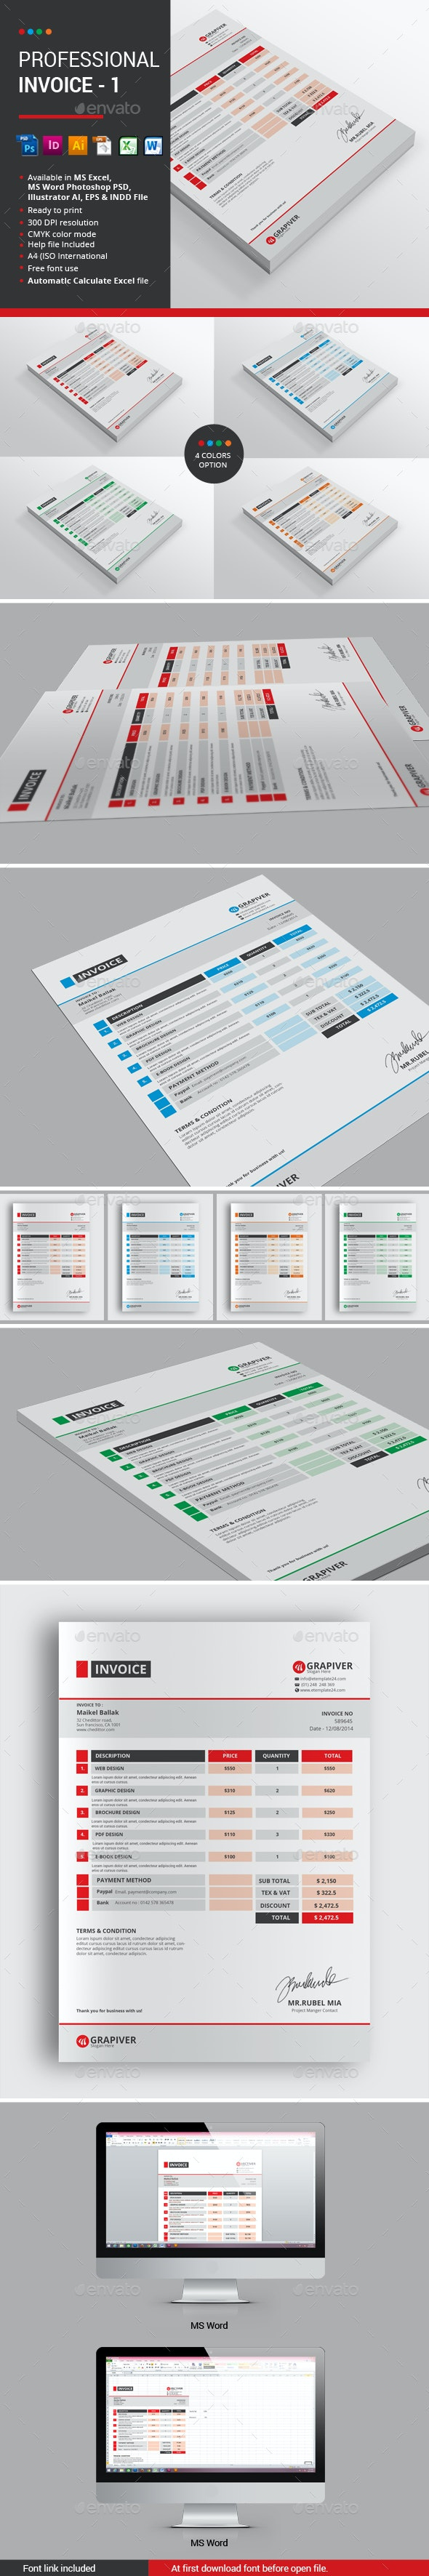 Professional Invoice - 1 - Proposals & Invoices Stationery